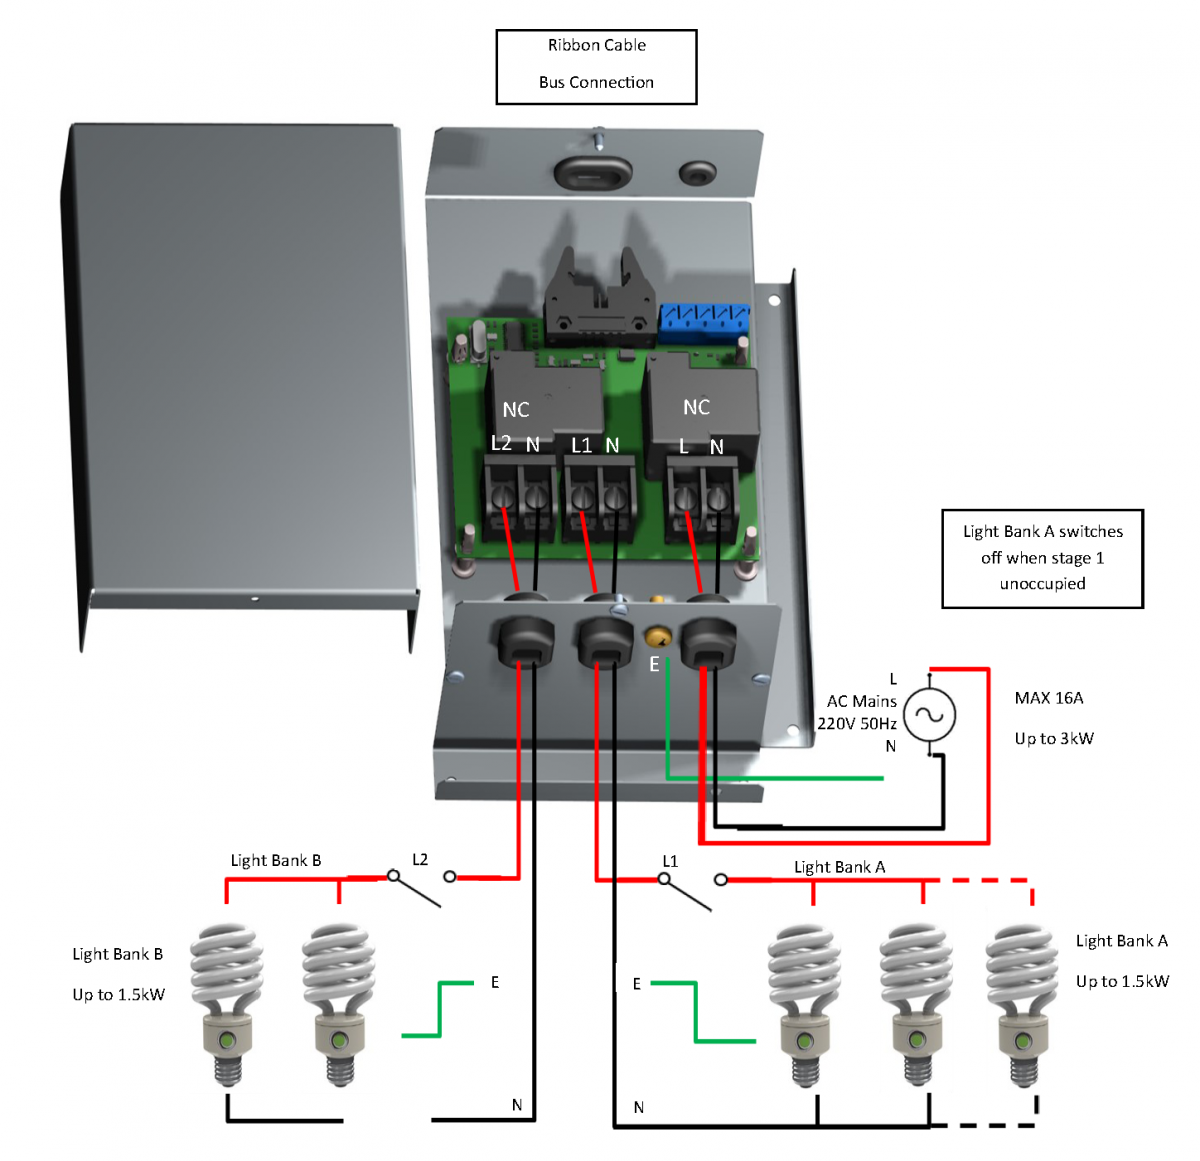 Light Switch Wiring Diagram 220v Switching Module Rickardair Back To Occupancy Sensing With Diffuser Integration